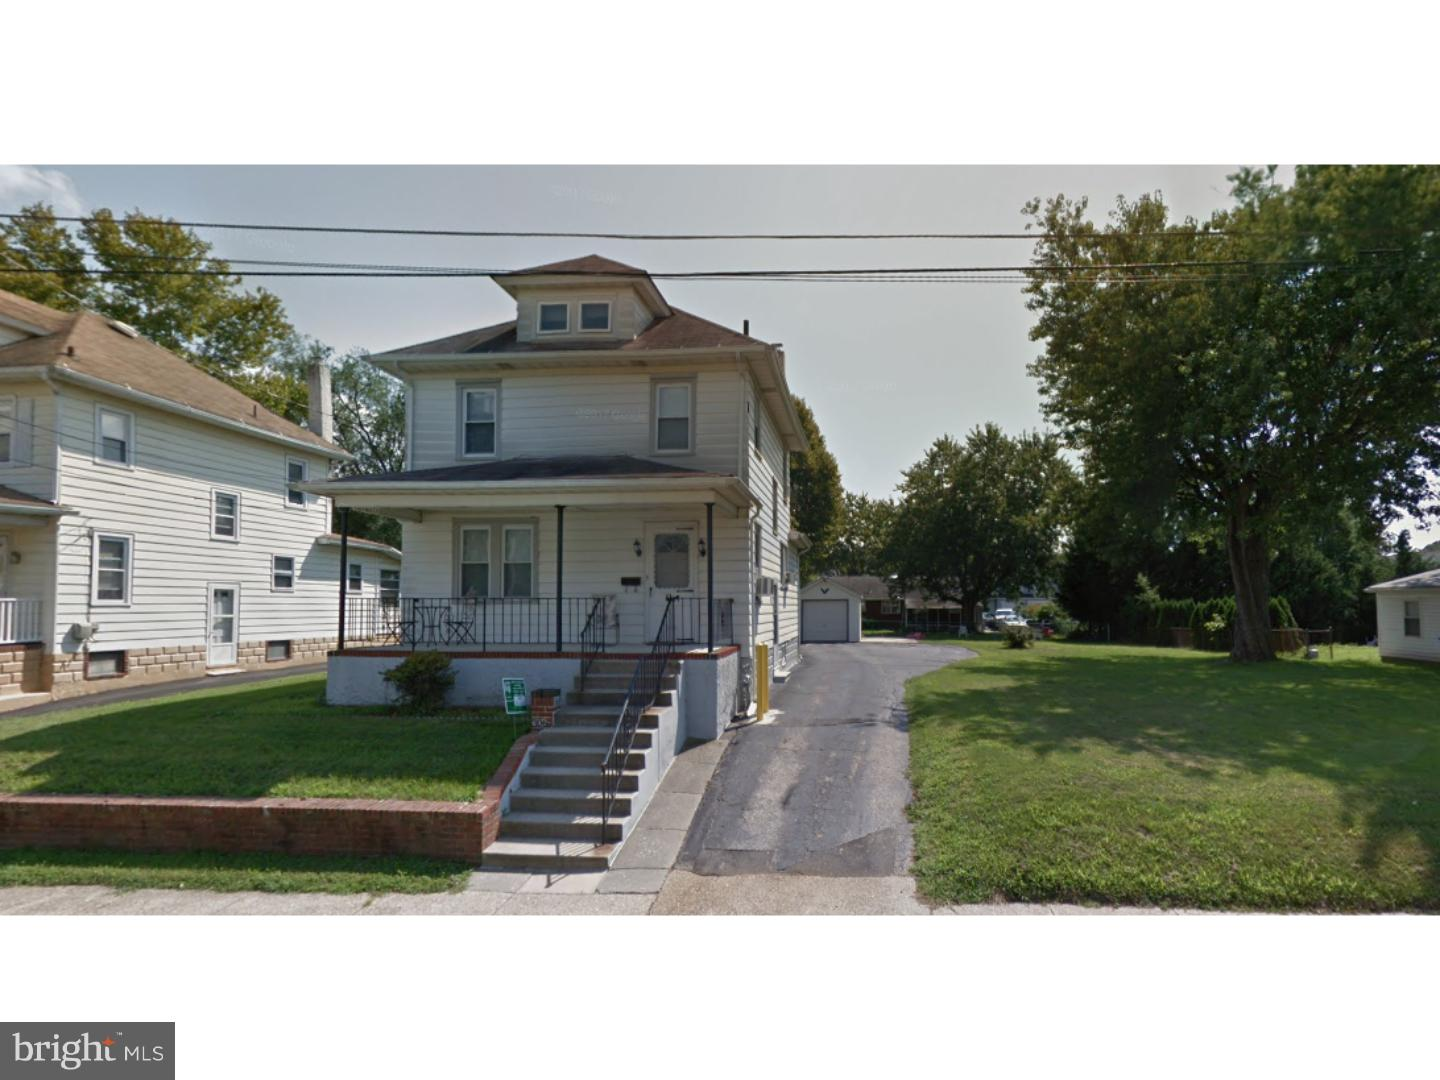 Single Family Home for Rent at 306 VICTORIA Street Glassboro, New Jersey 08028 United States